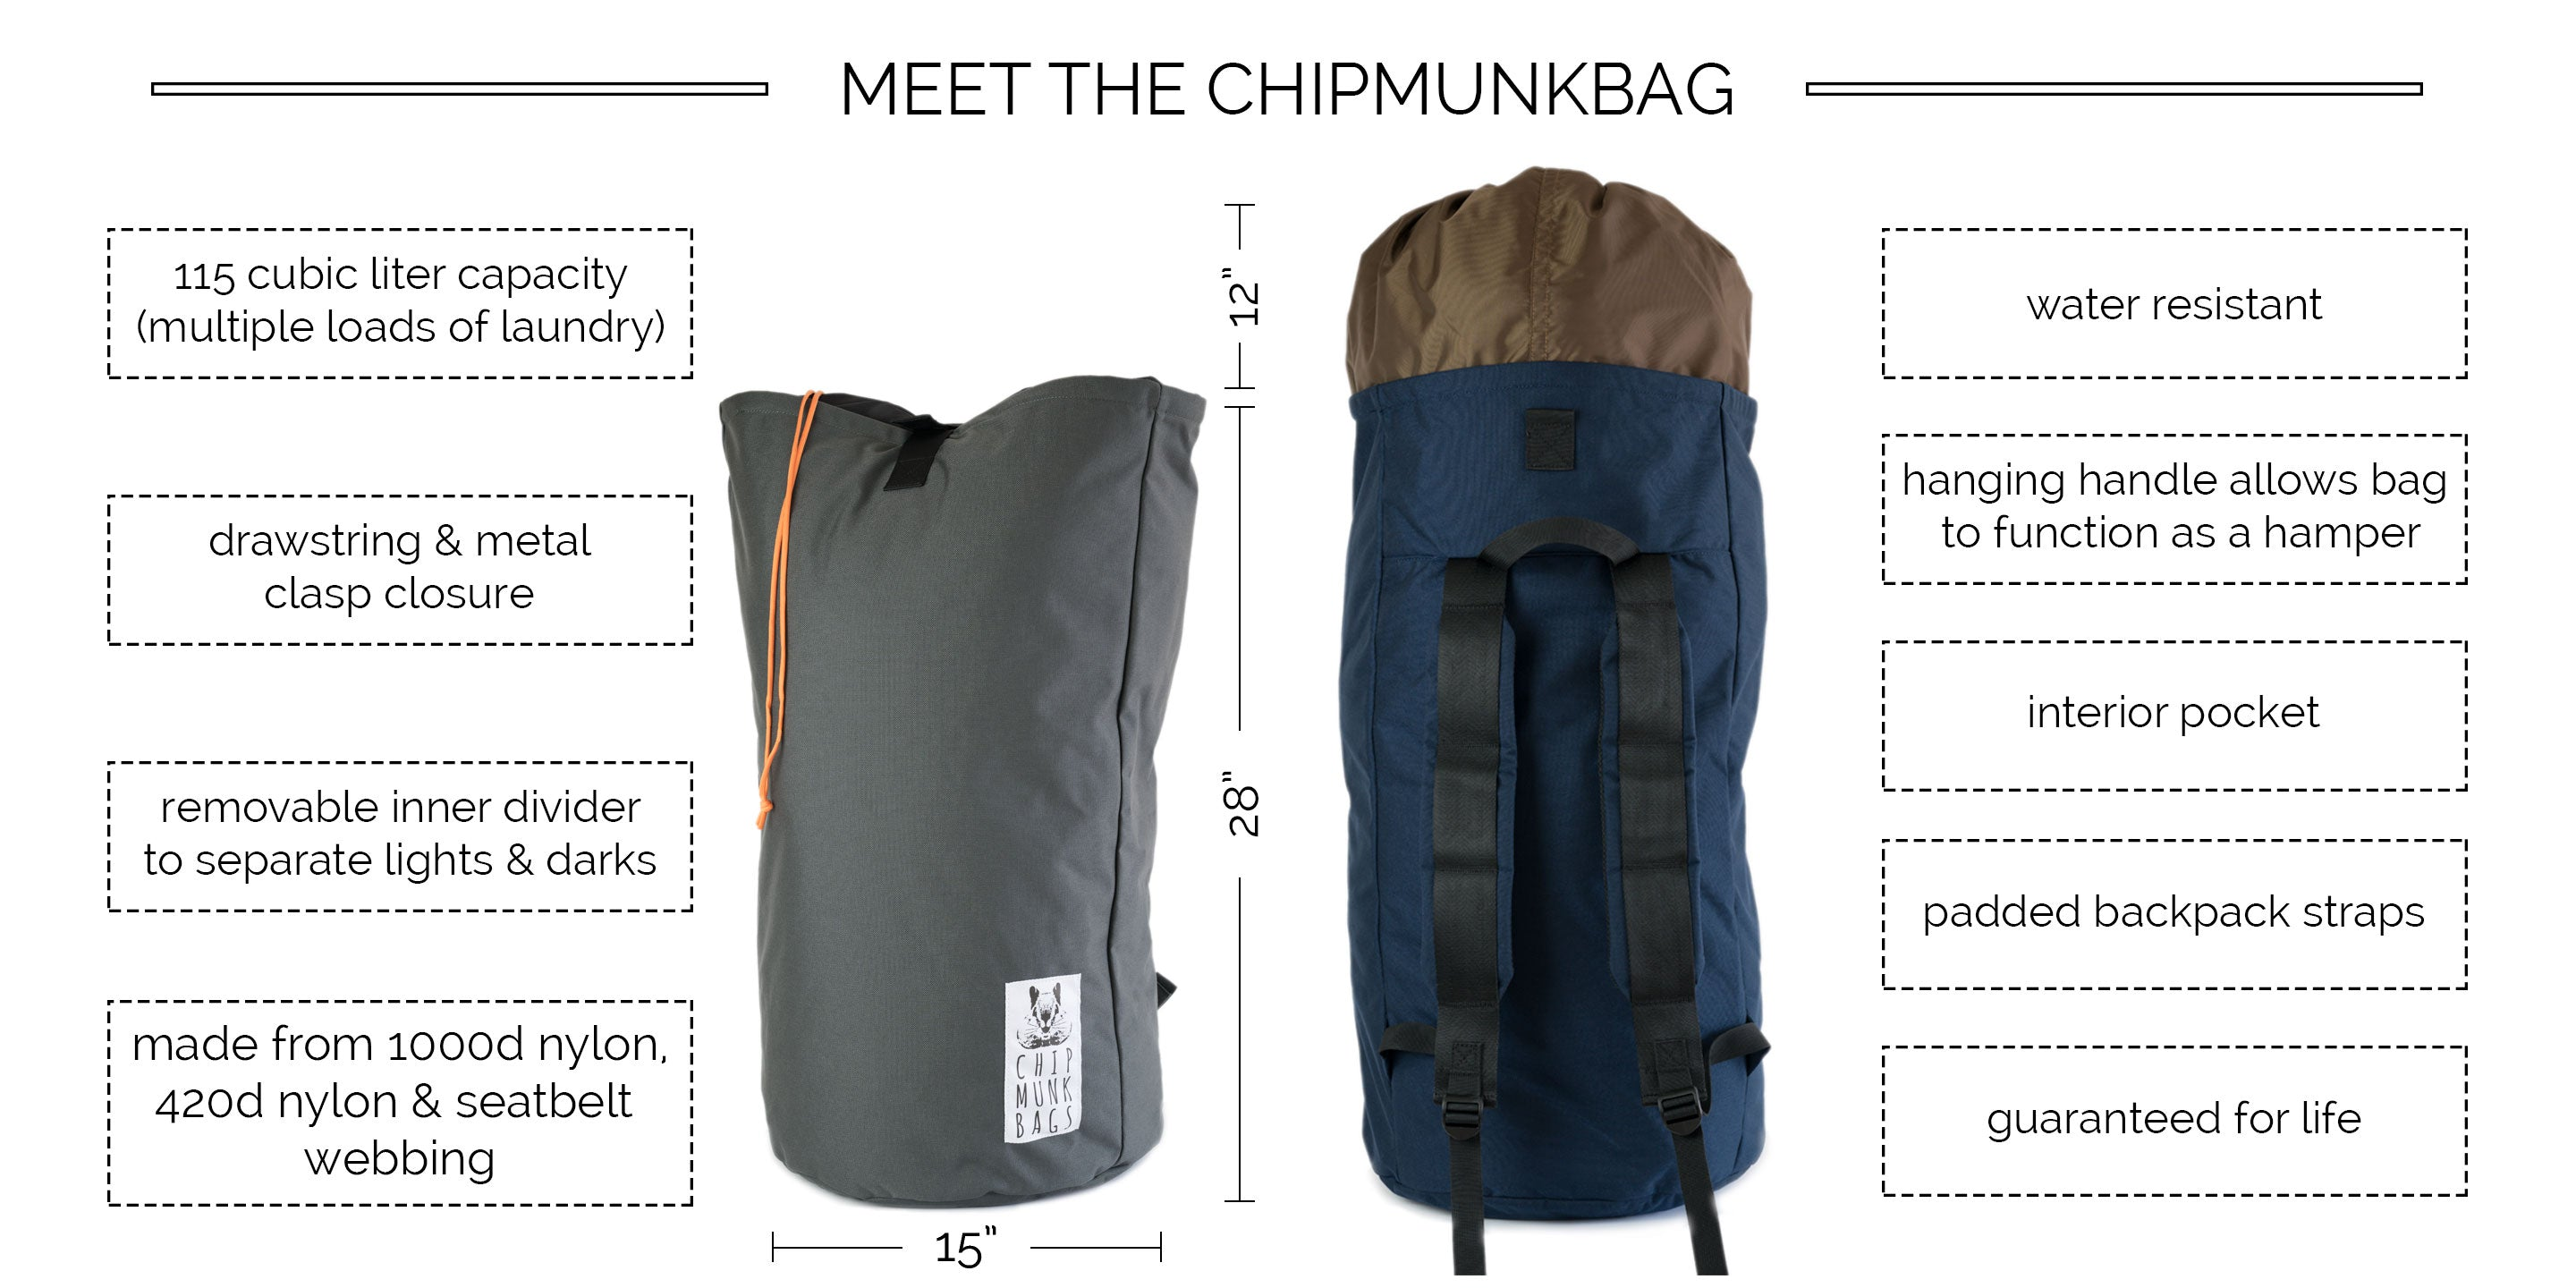 The ChipmunkBag Laundry Bag Description